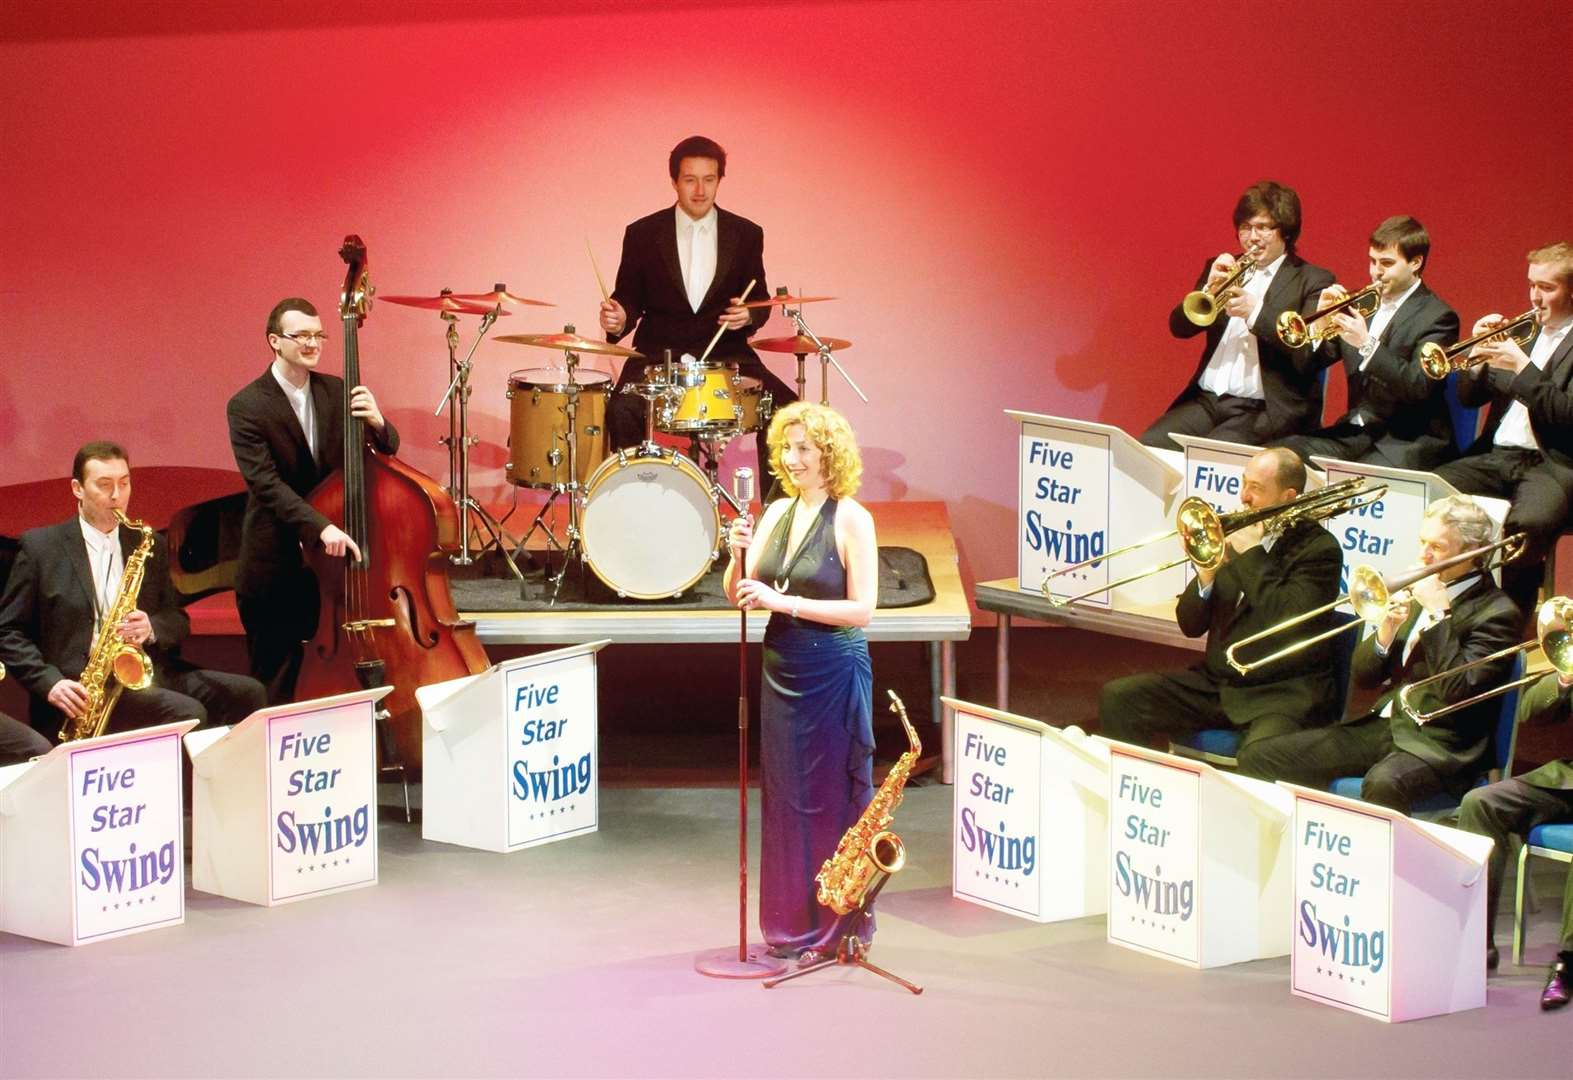 Five Star Swing band will bring the big band sound to Christmas